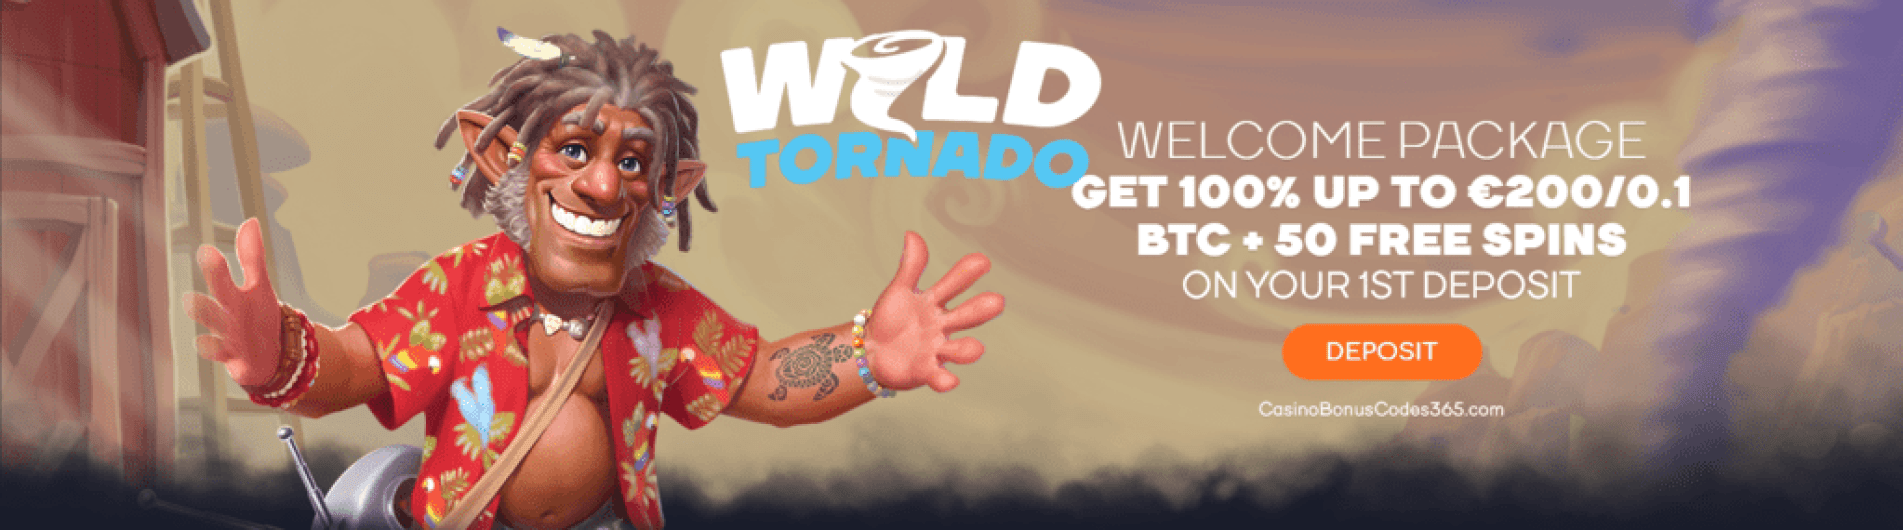 WildTornado Casino €450 Bonus plus 150 FREE Spins Welcome Package